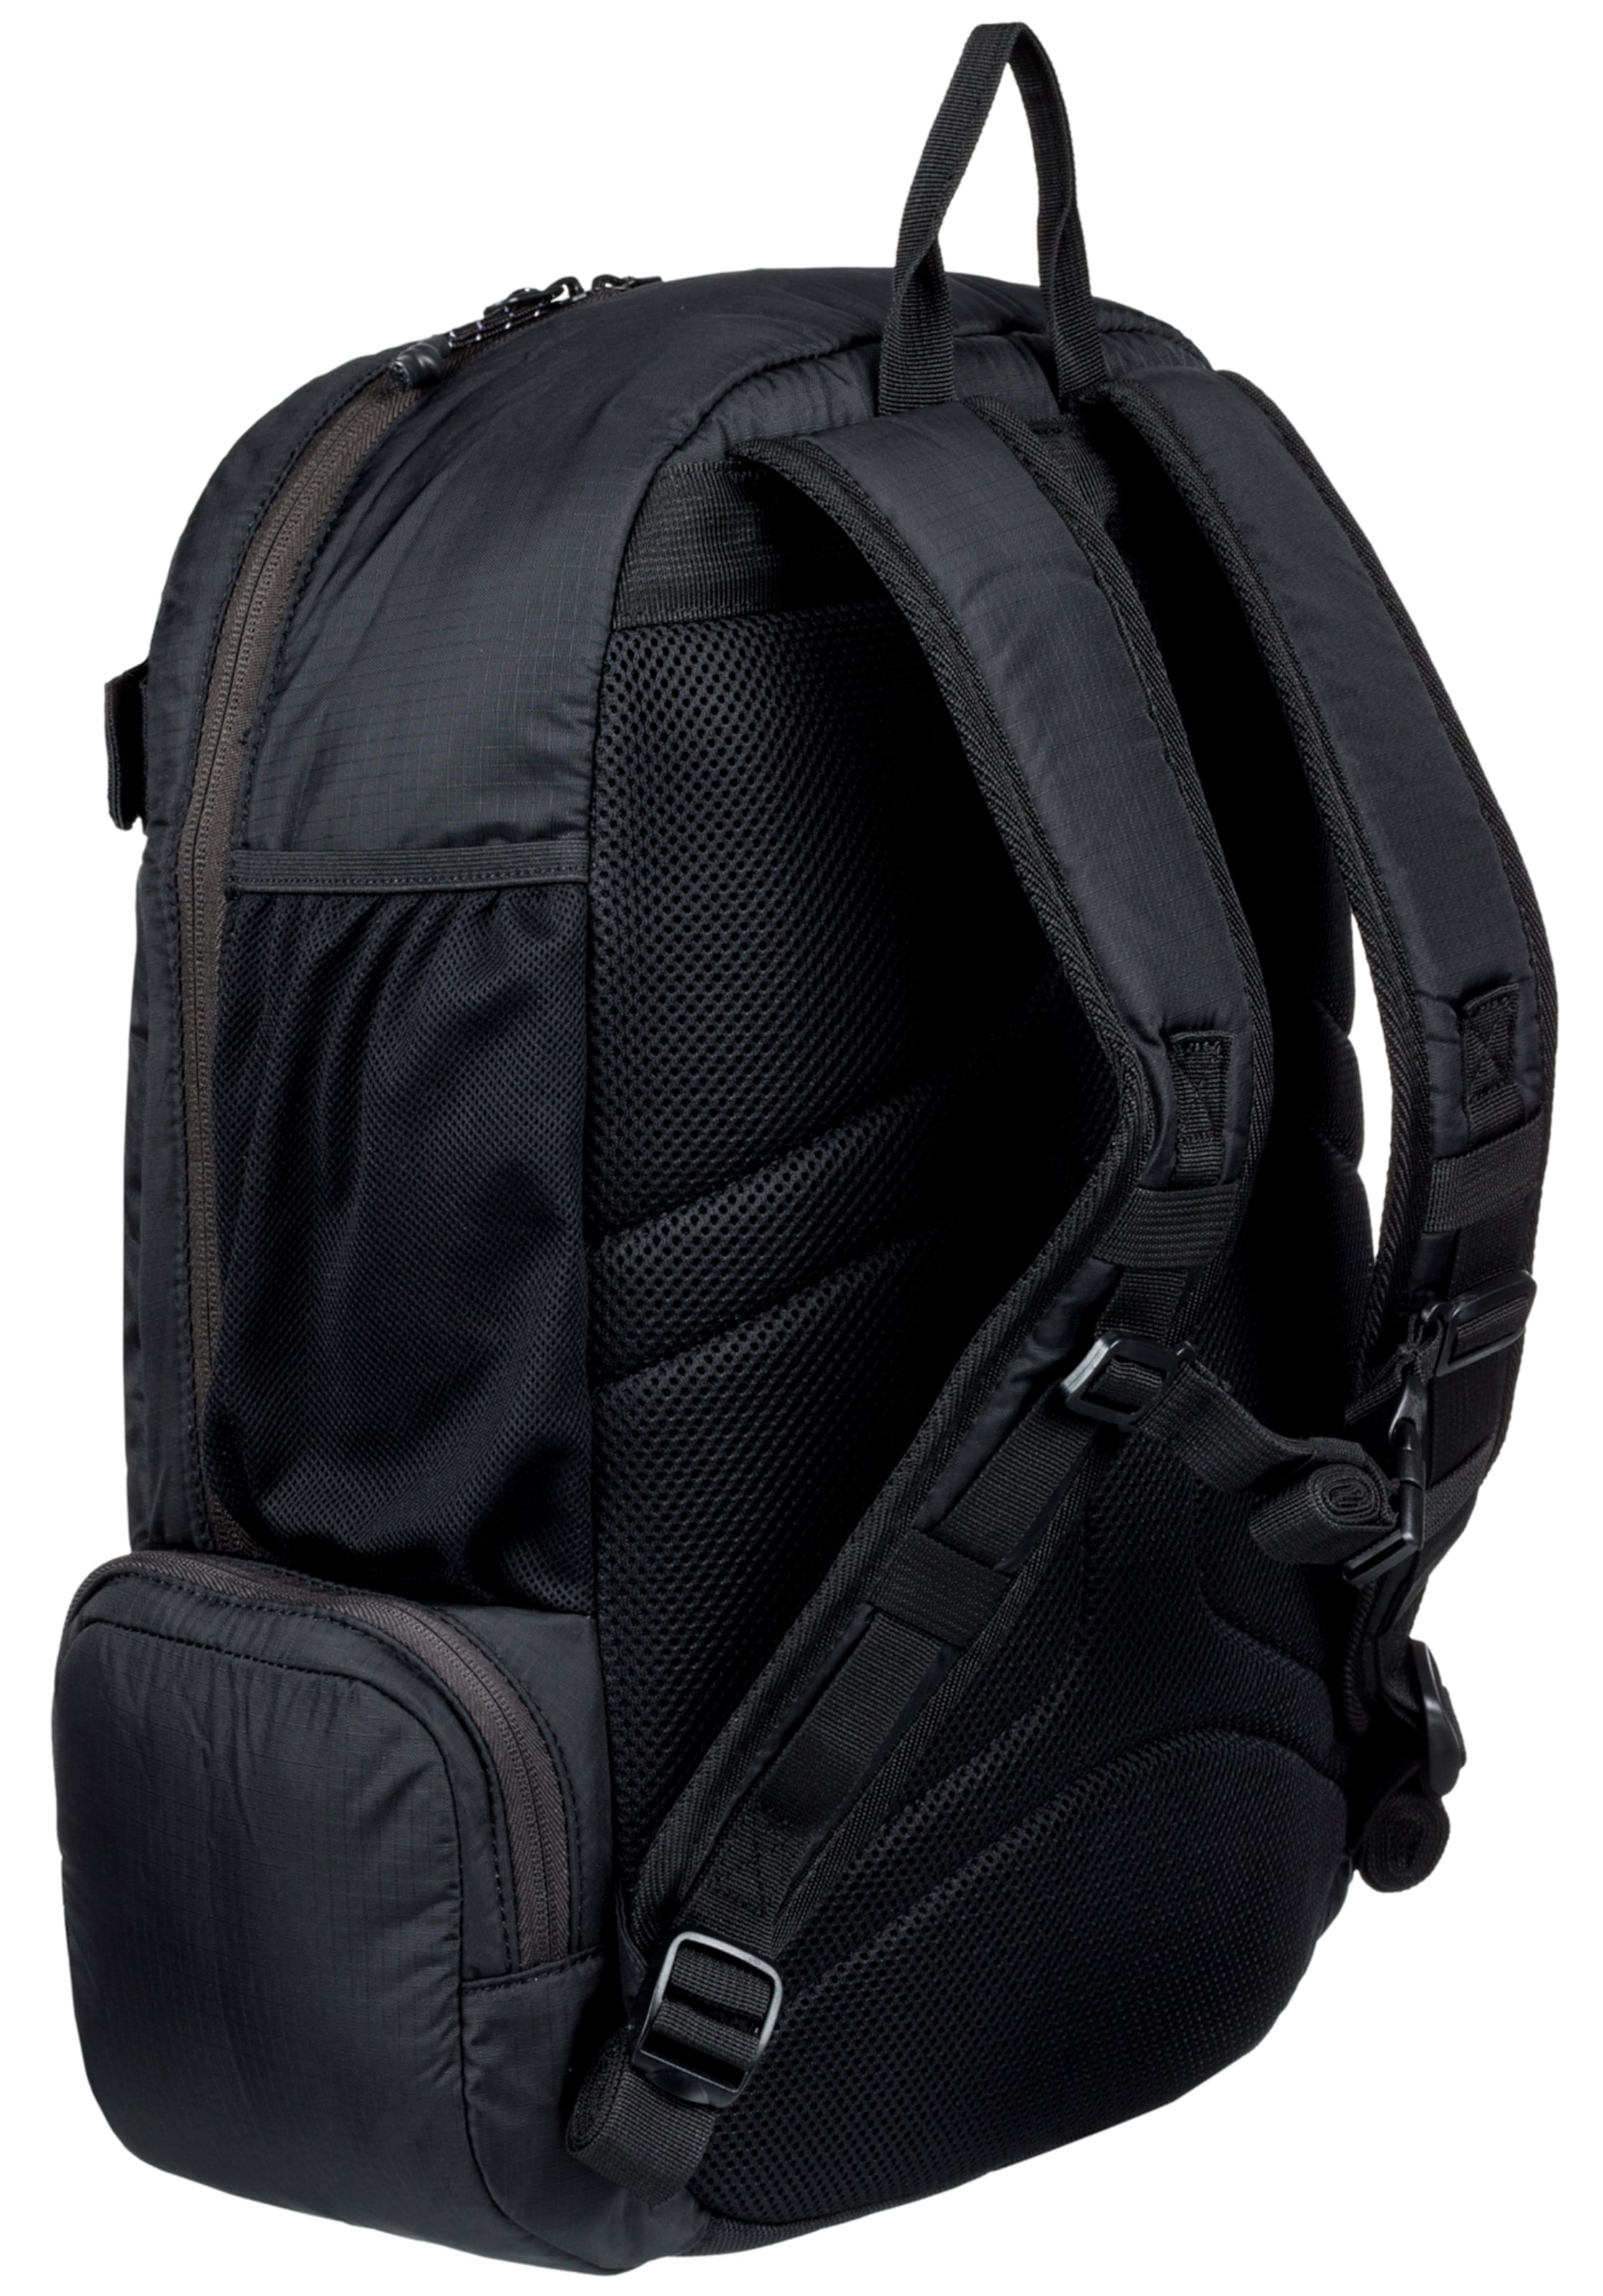 In Dc Shoes 'bushings' Rucksack Schwarz 6gyb7vIfY